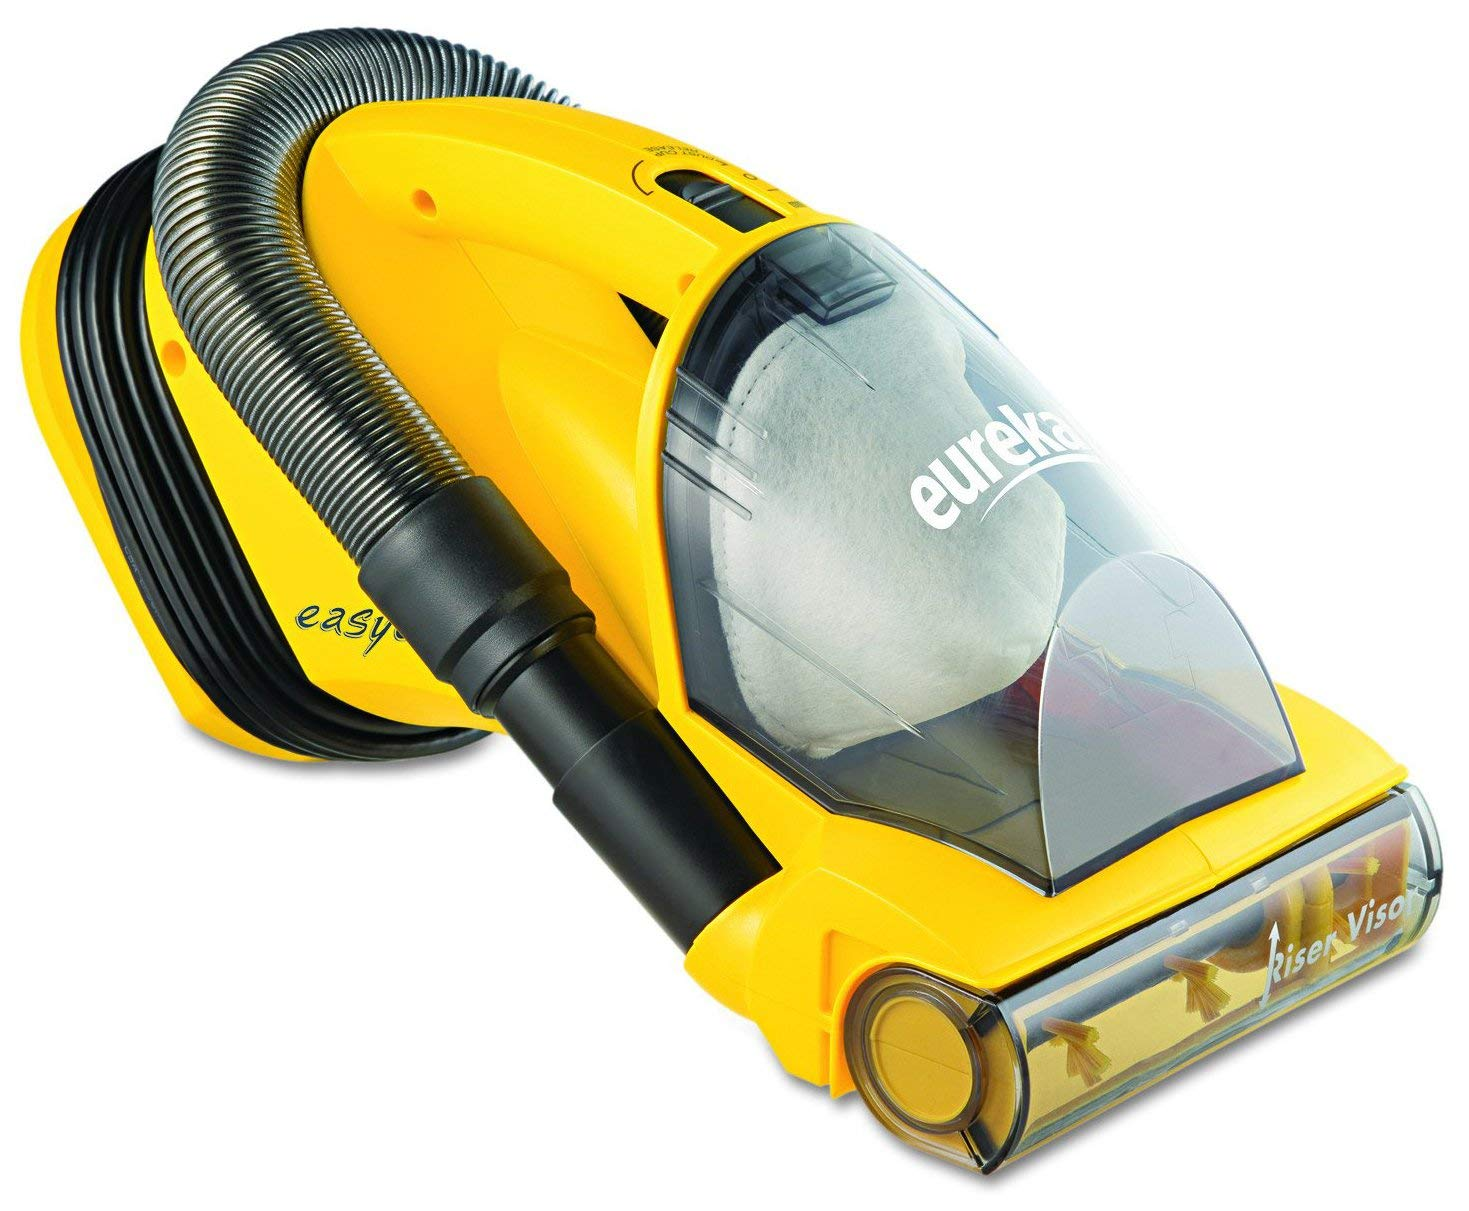 Eureka Easy Clean Corded Handheld vacuum